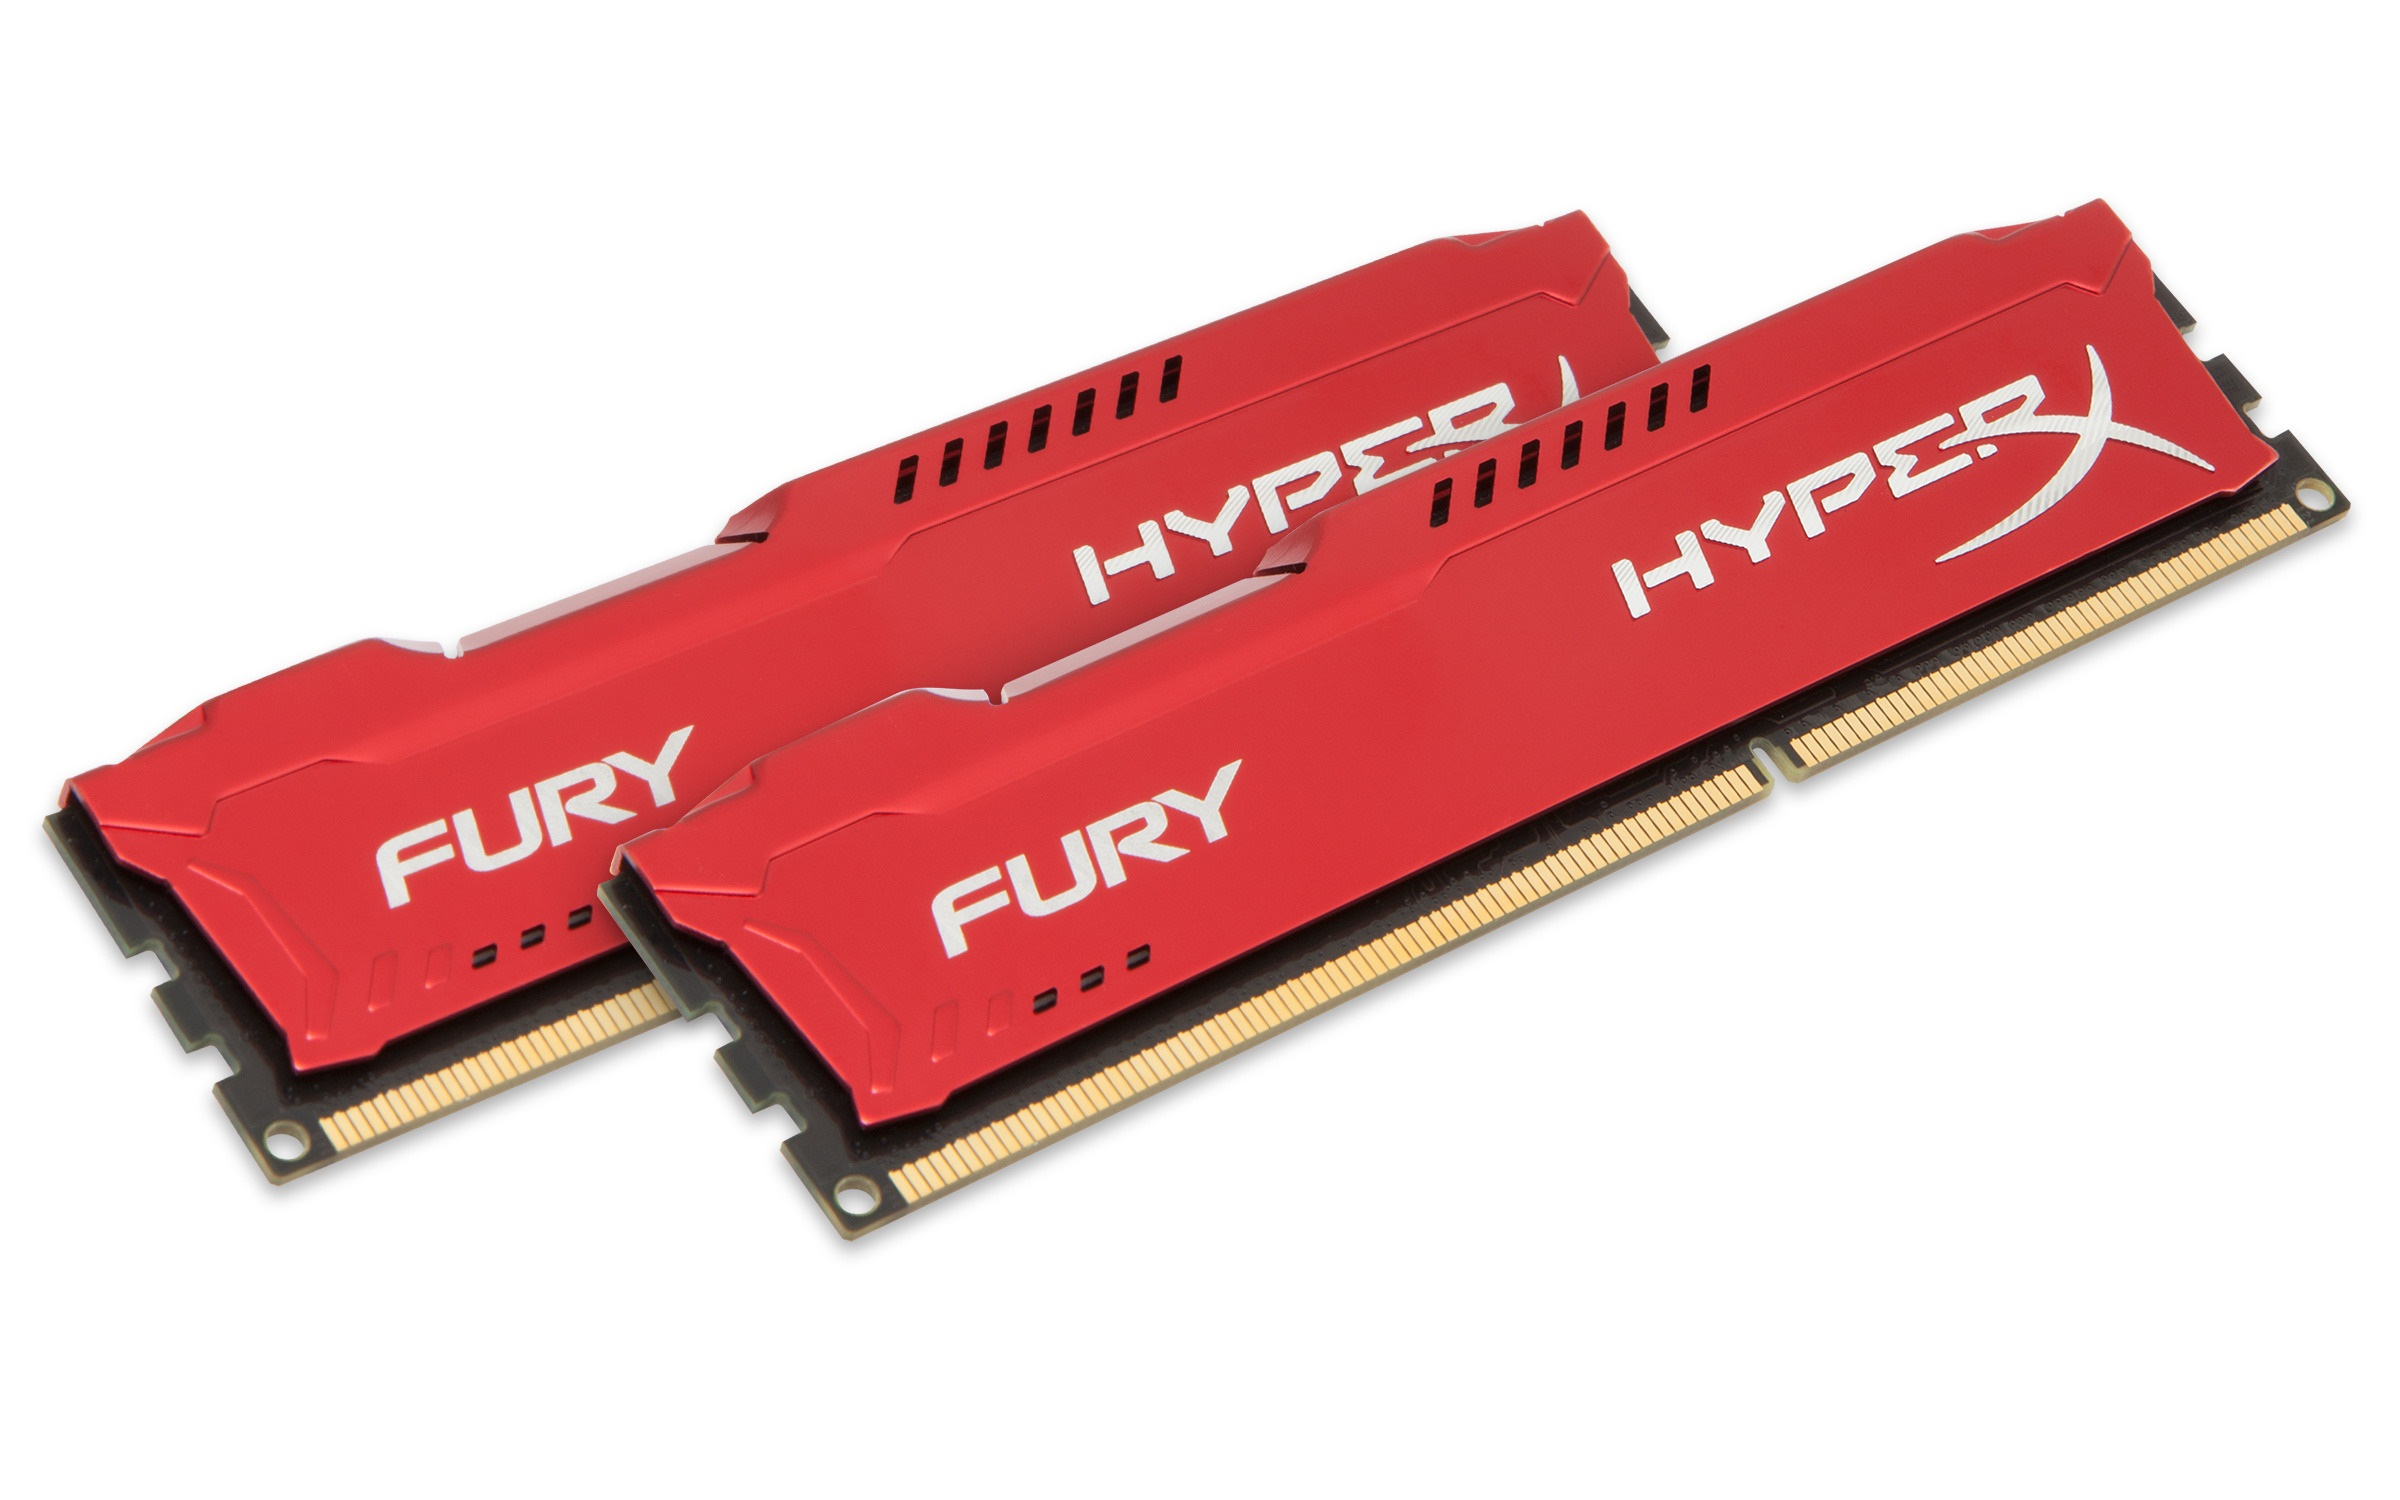 16GB DDR3-1866MHz Kingston HyperX Fury Red, 2x8GB